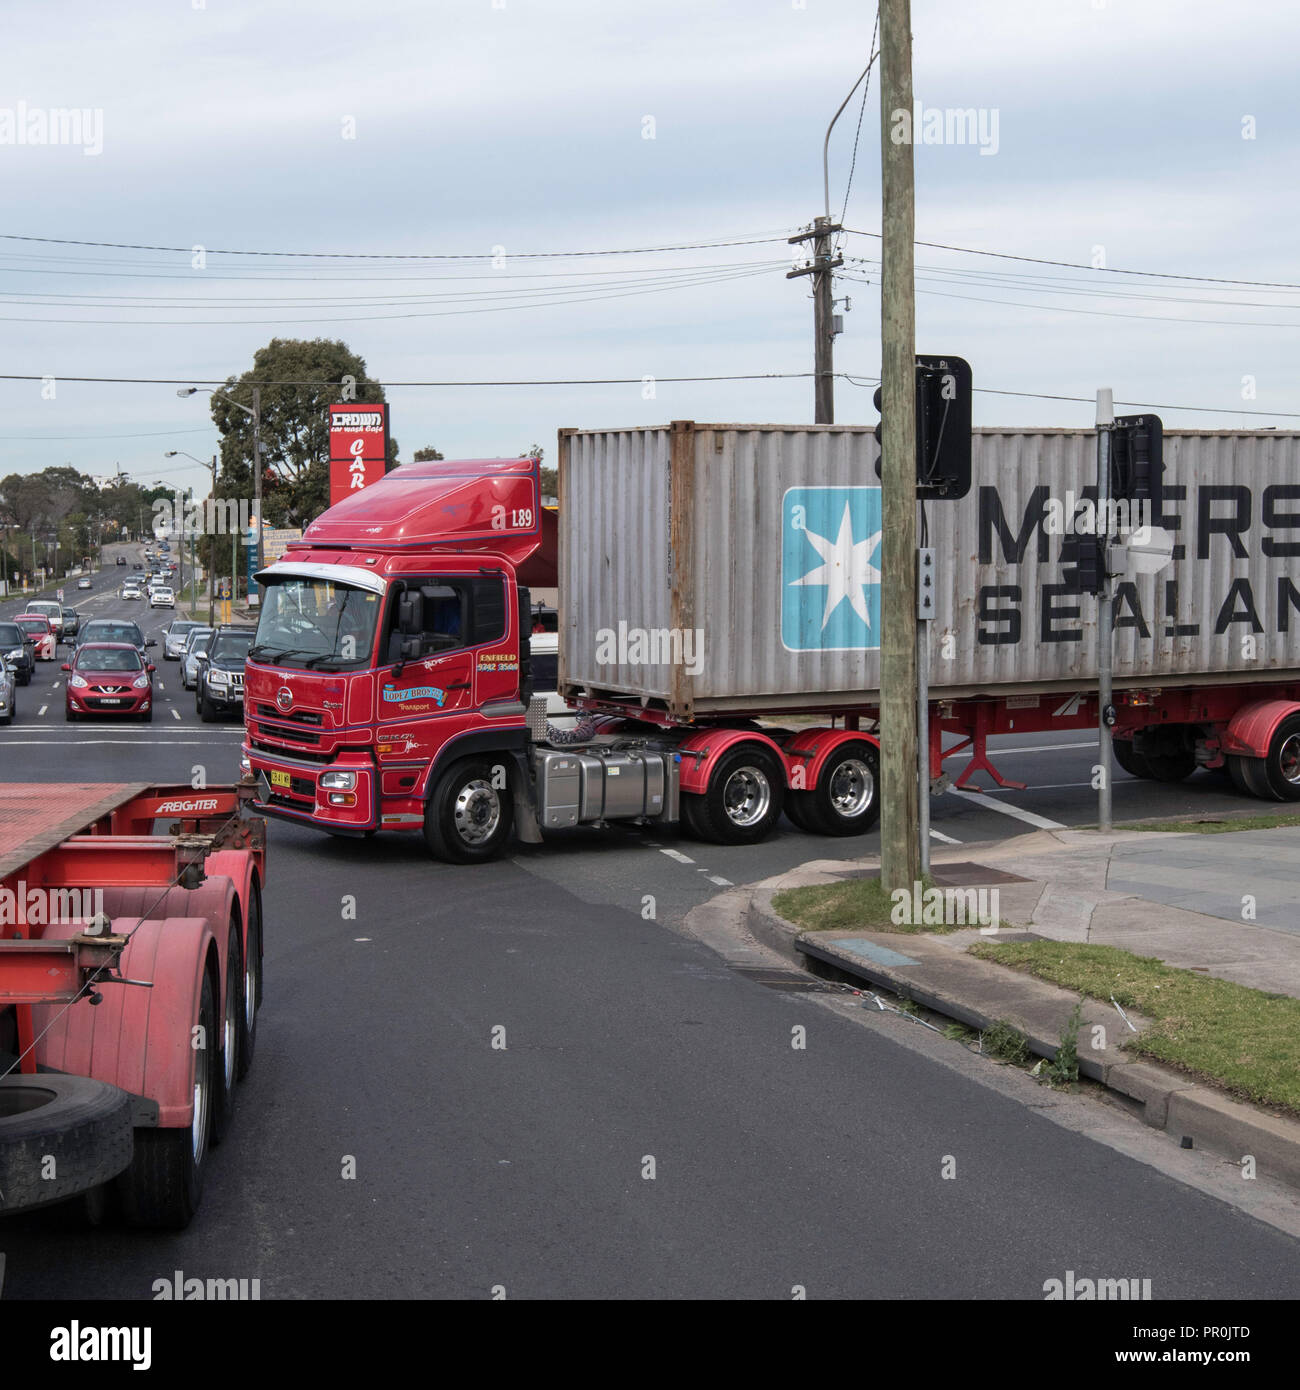 A large semi trailer truck carrying a Maersk Sealand shipping container turning a corner in Sydney traffic, Australia - Stock Image